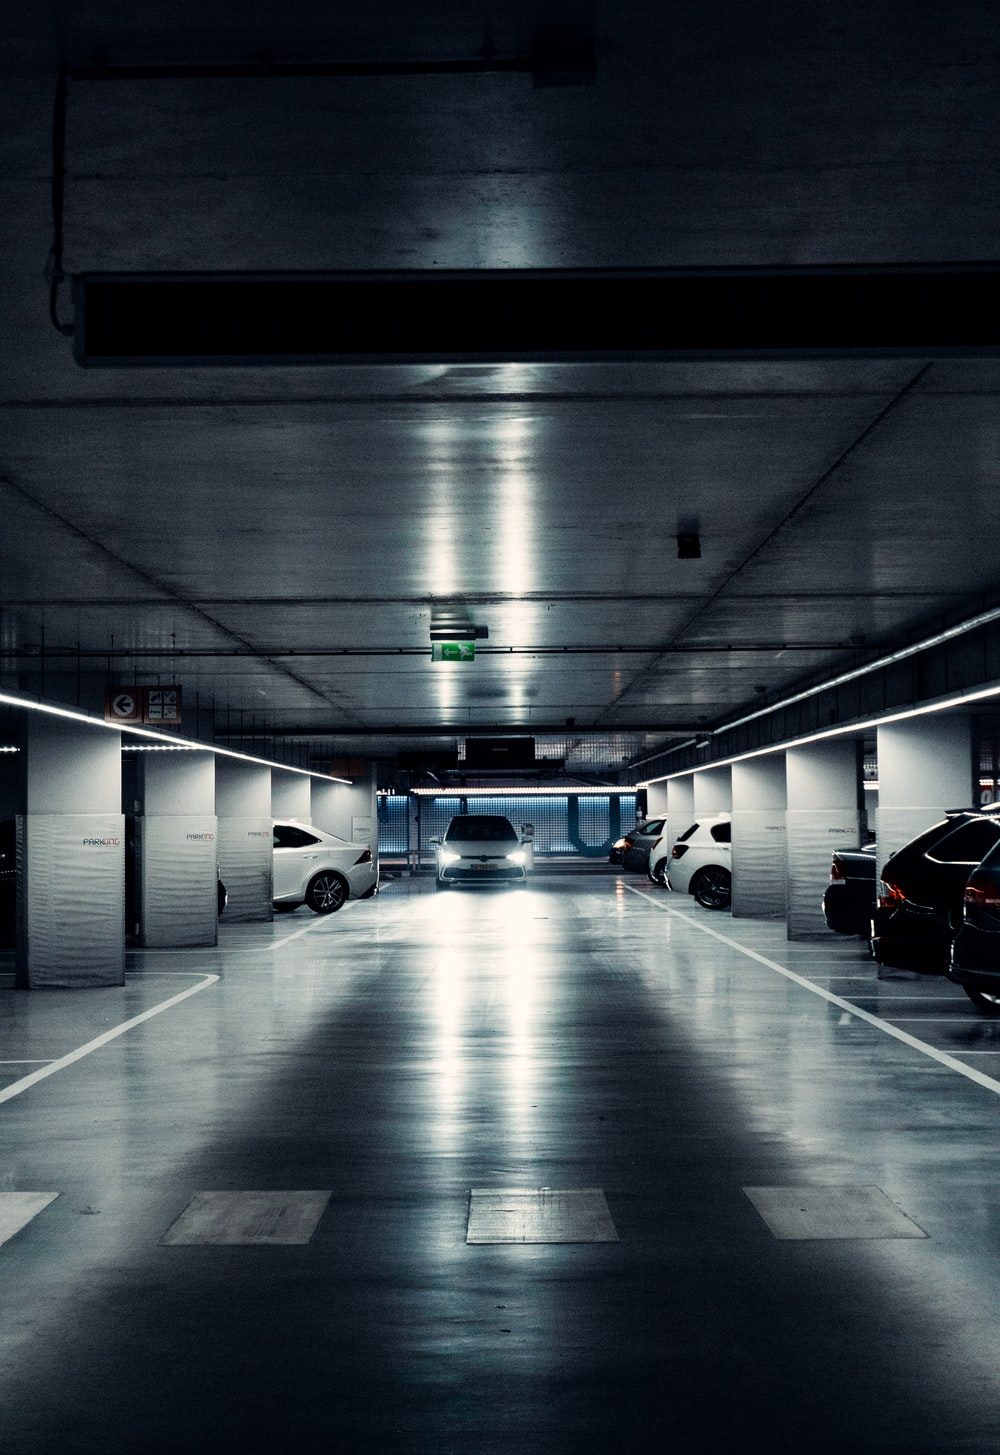 cars parked in a tunnel